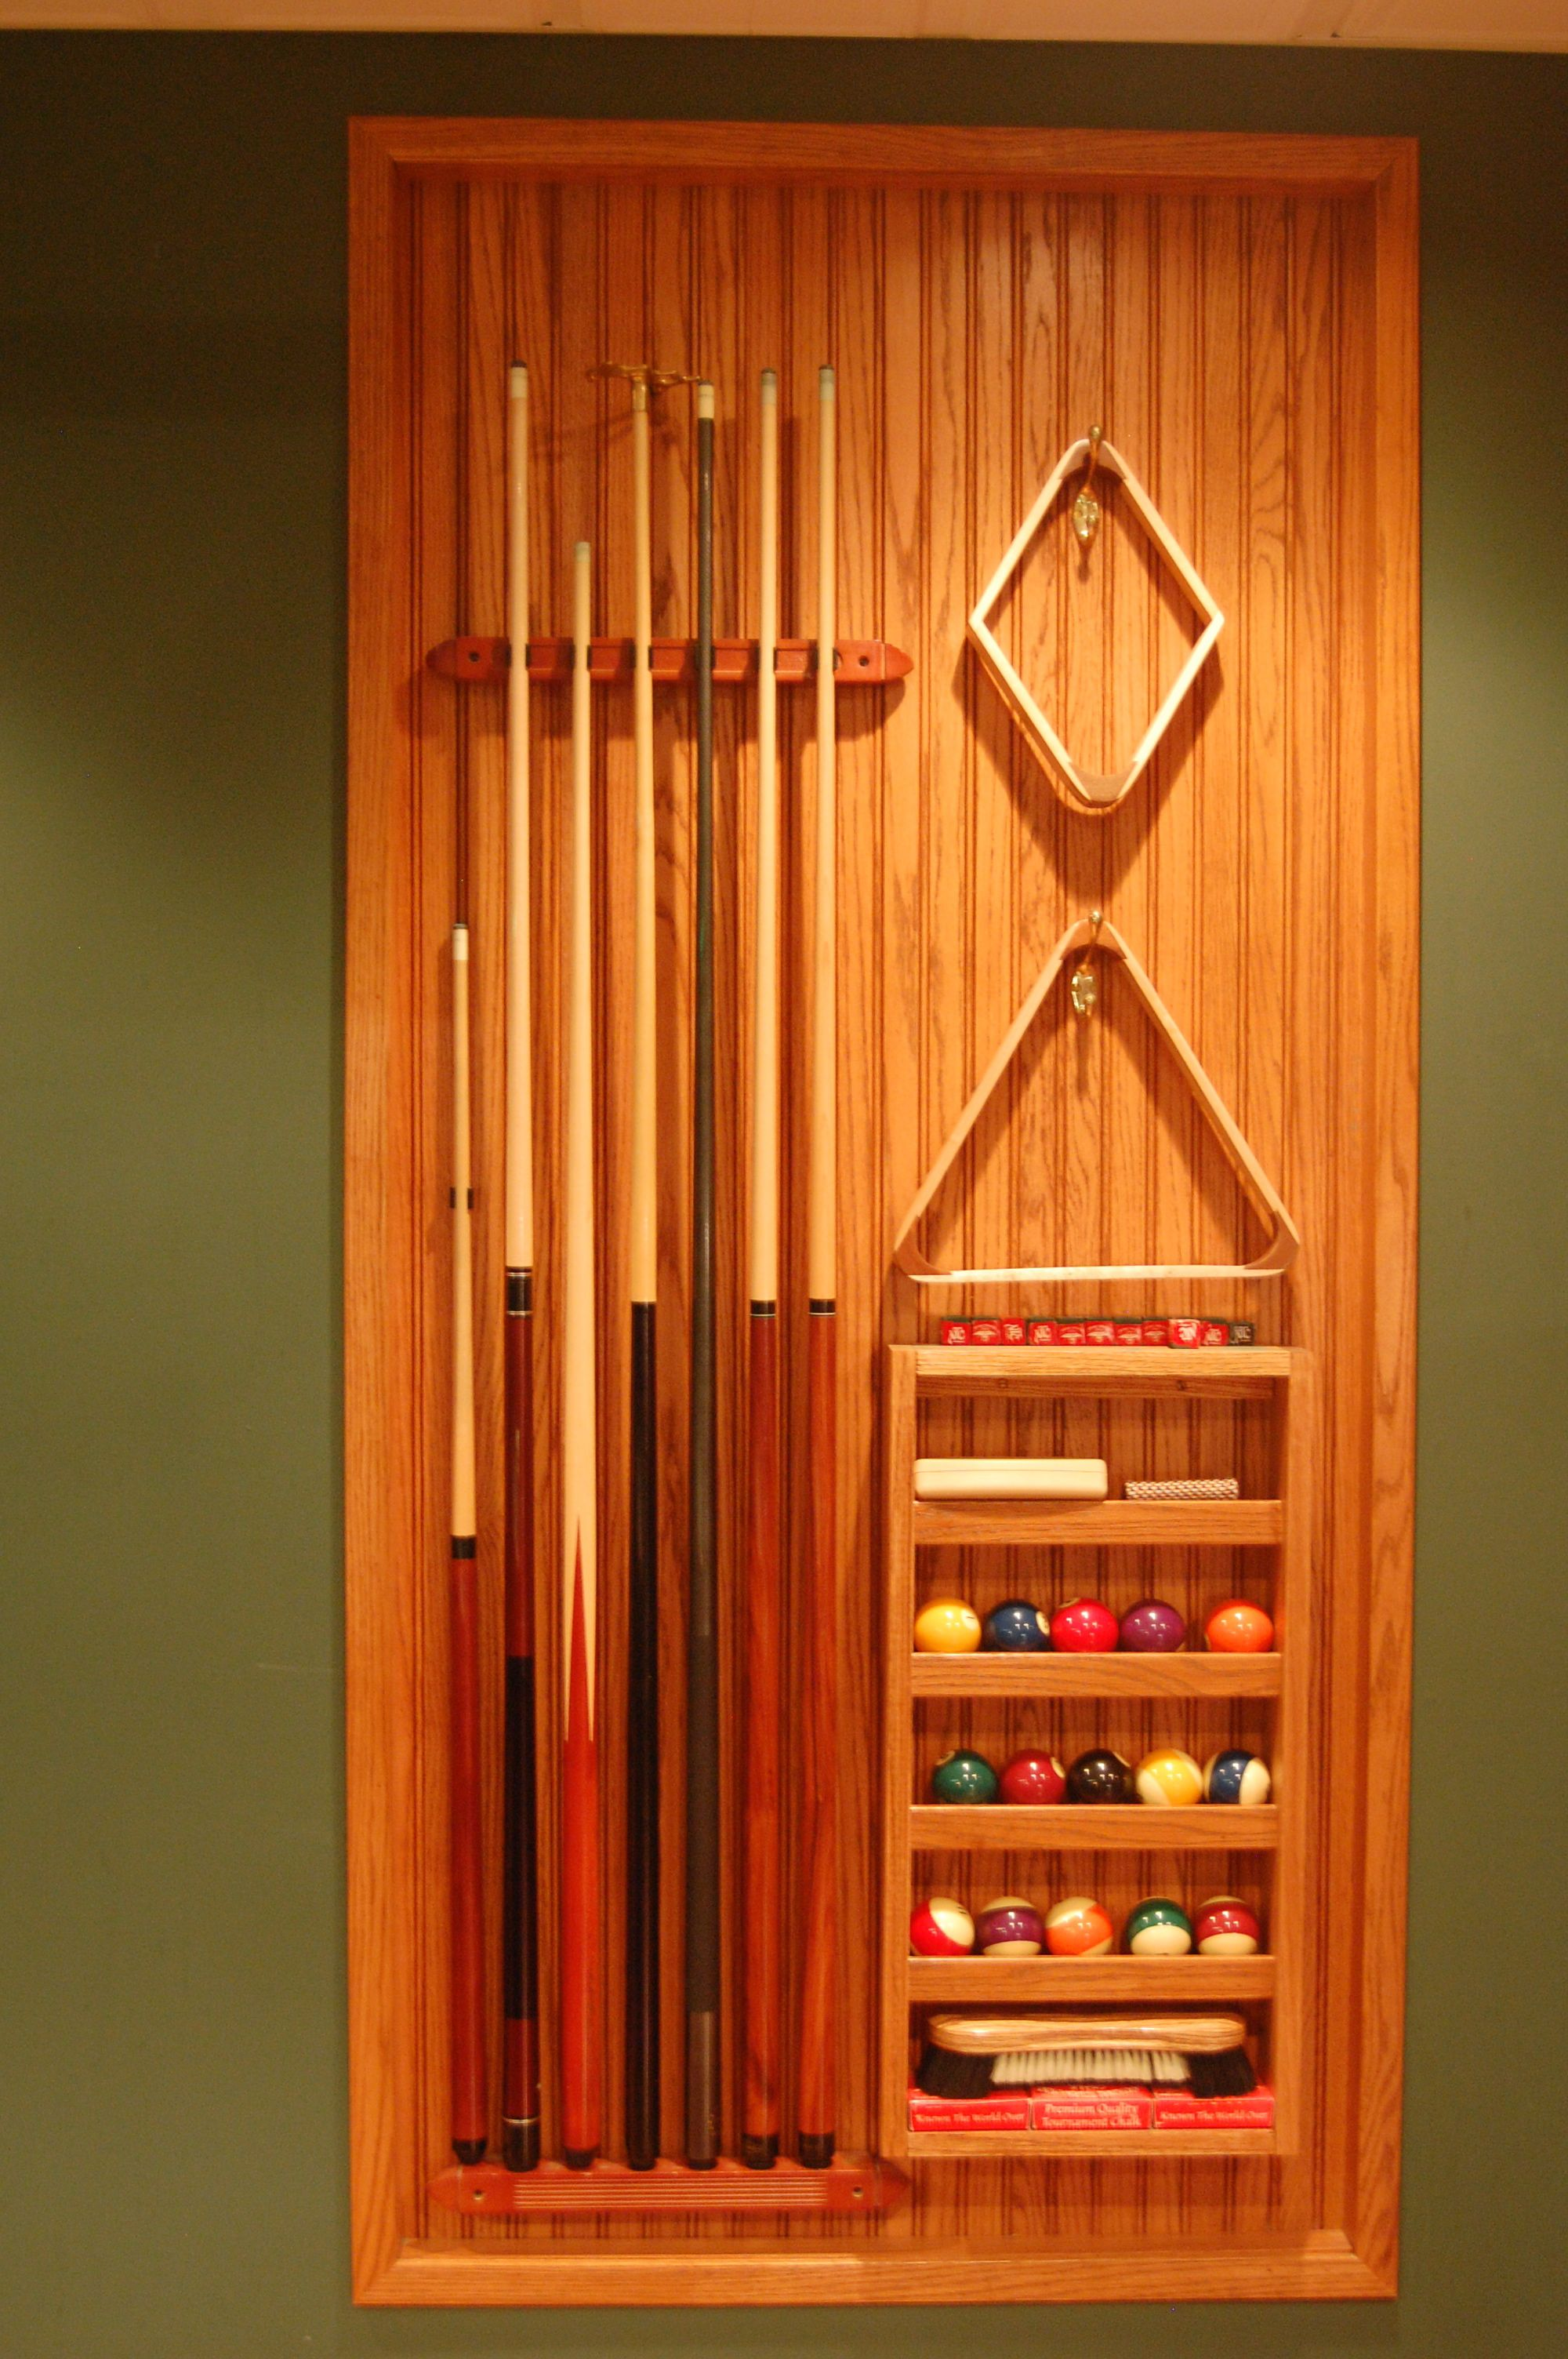 Cue rack I built from Oak, insets into wall   For the Home ...